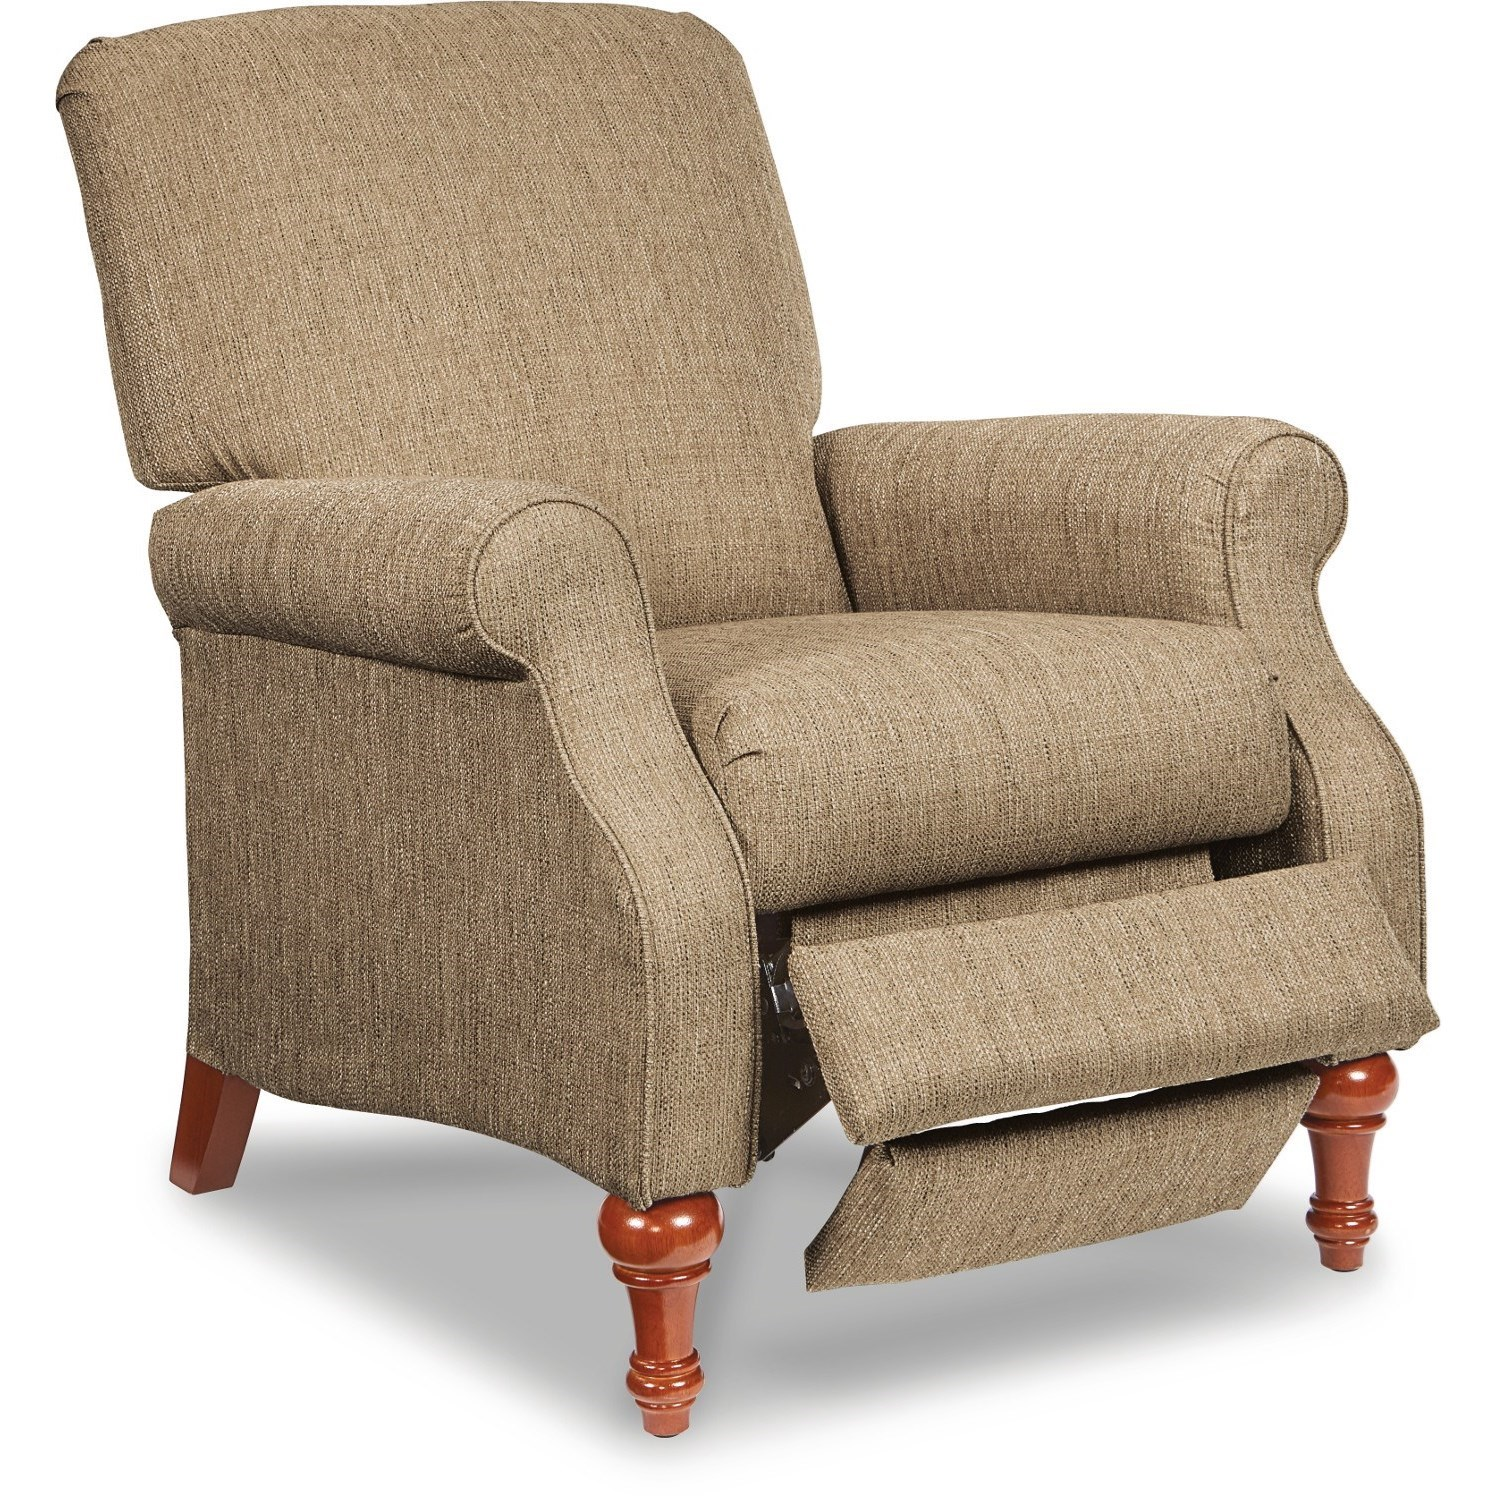 La Z Boy Recliners Raleigh Recliner Godby Home